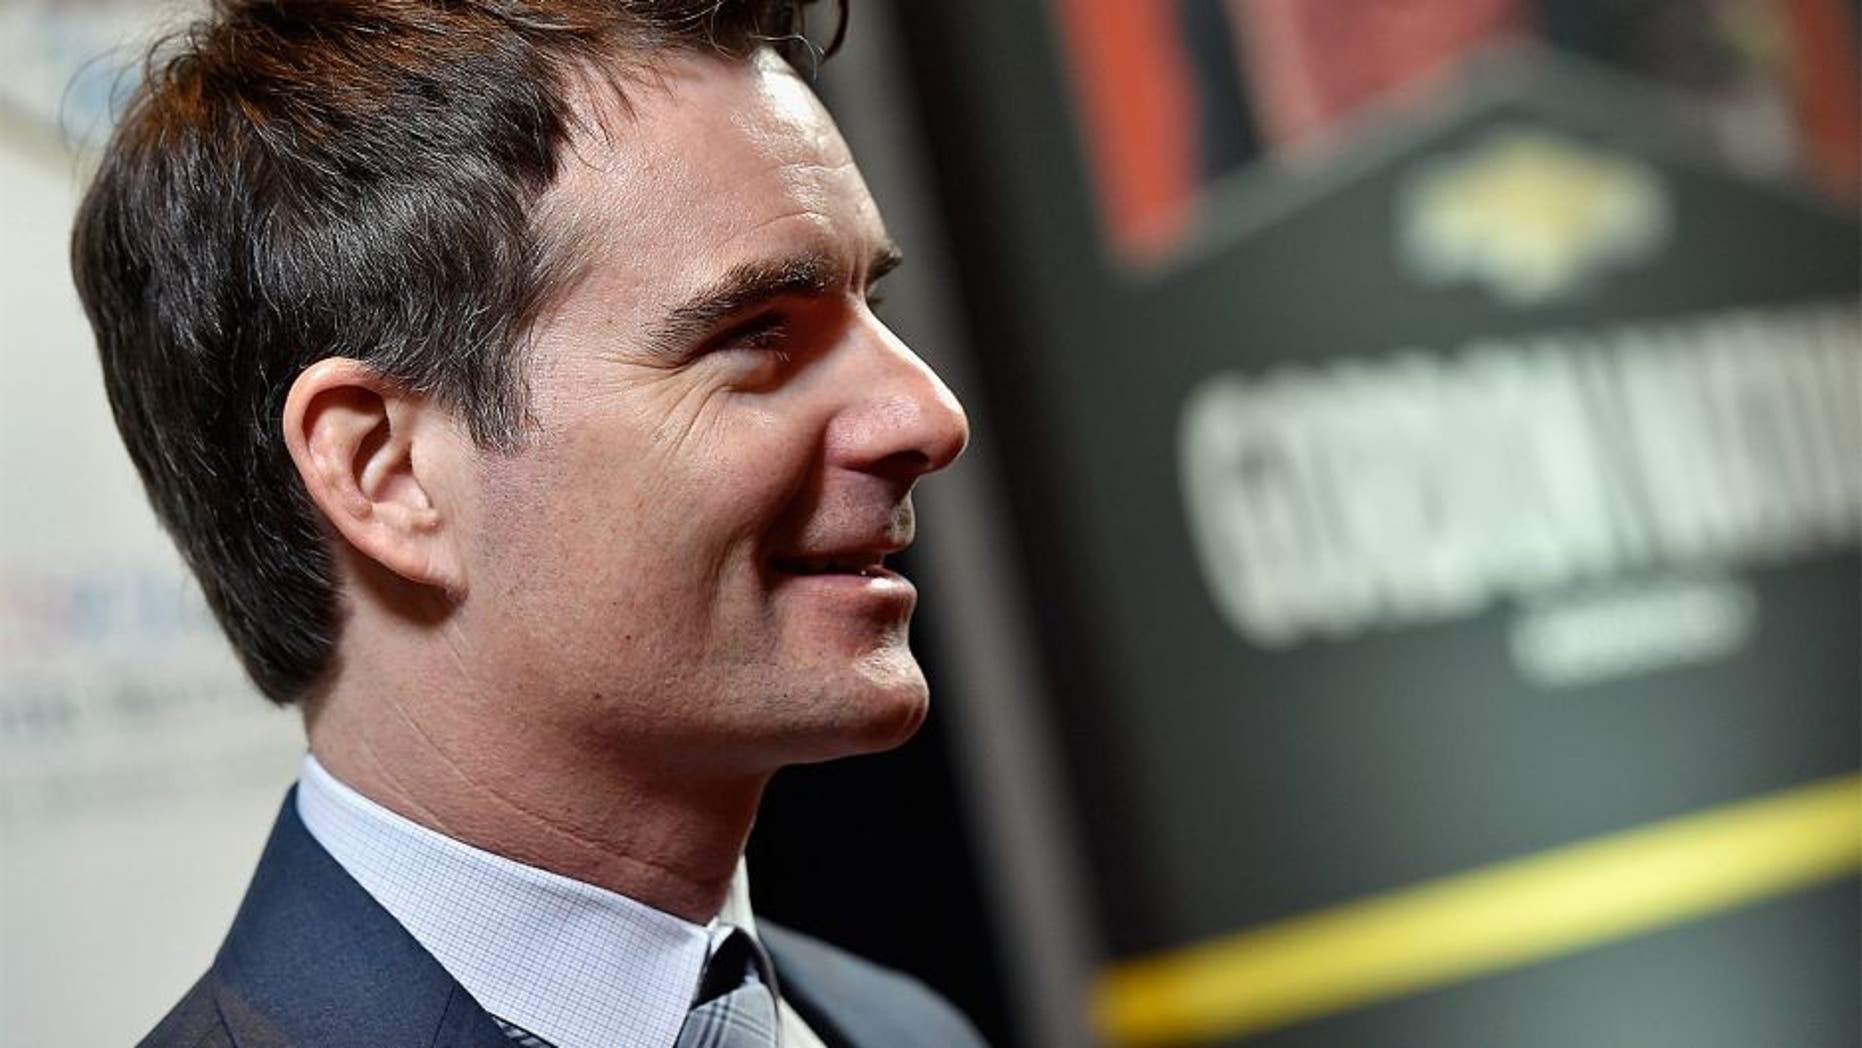 LAS VEGAS, NV - DECEMBER 03: NASCAR Sprint Cup Series driver Jeff Gordon looks on during media availability following the 2015 NASCAR NMPA Myers Brothers Awards Luncheon at Encore Las Vegas on December 3, 2015 in Las Vegas, Nevada. (Photo by David Becker/NASCAR via Getty Images)